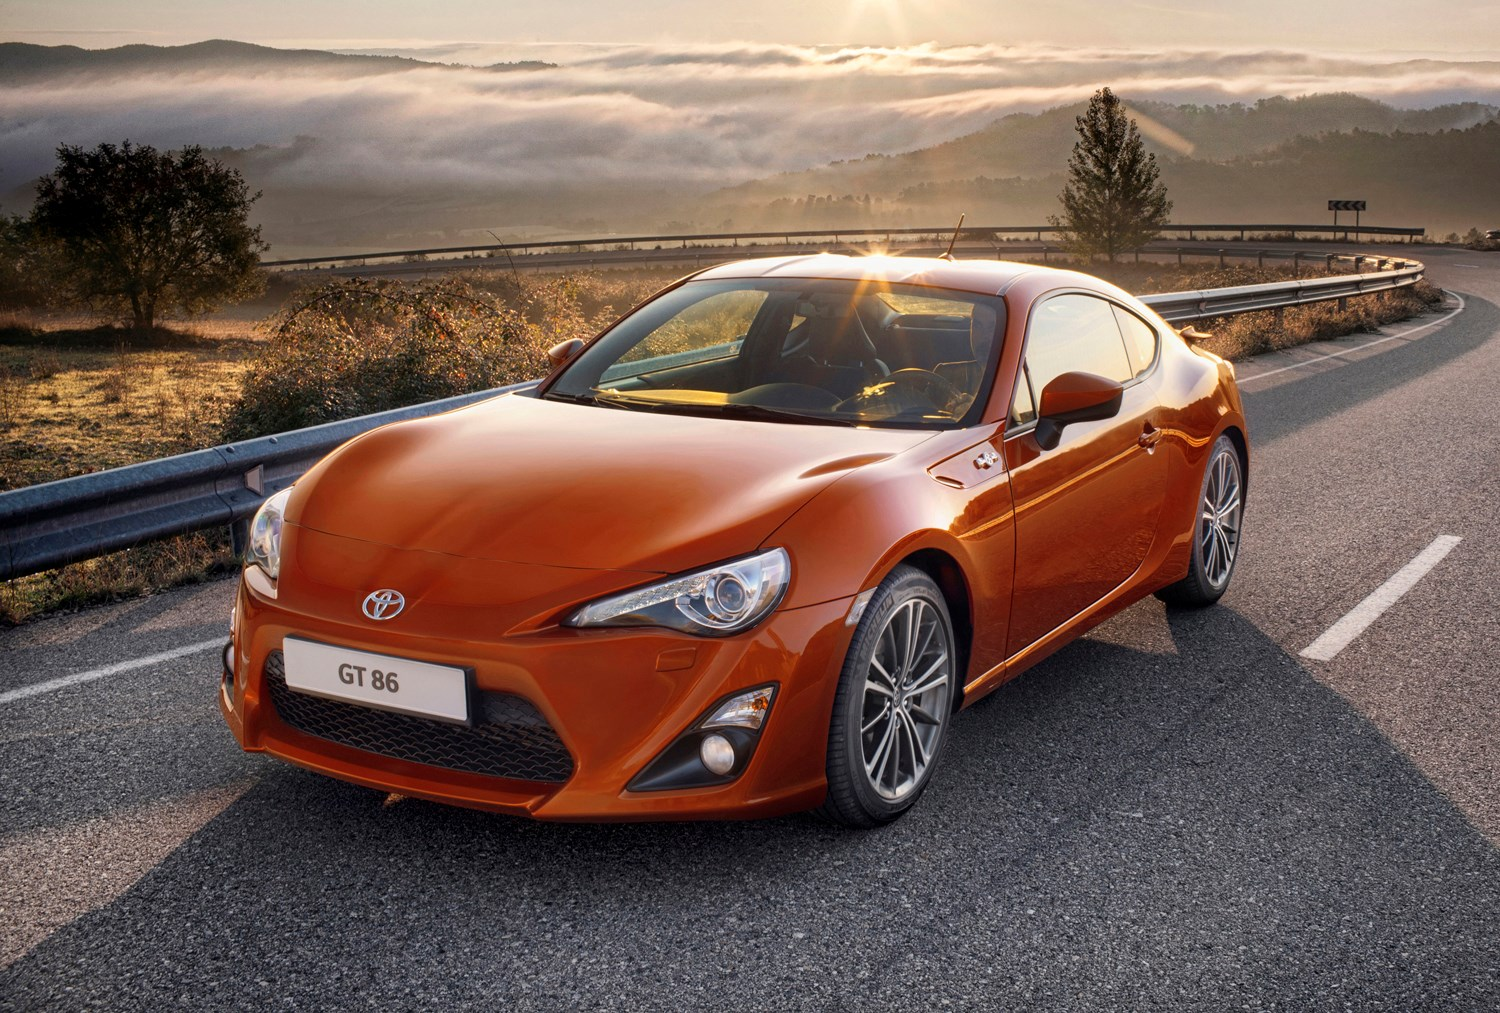 Toyota Gt86 2016 Driving